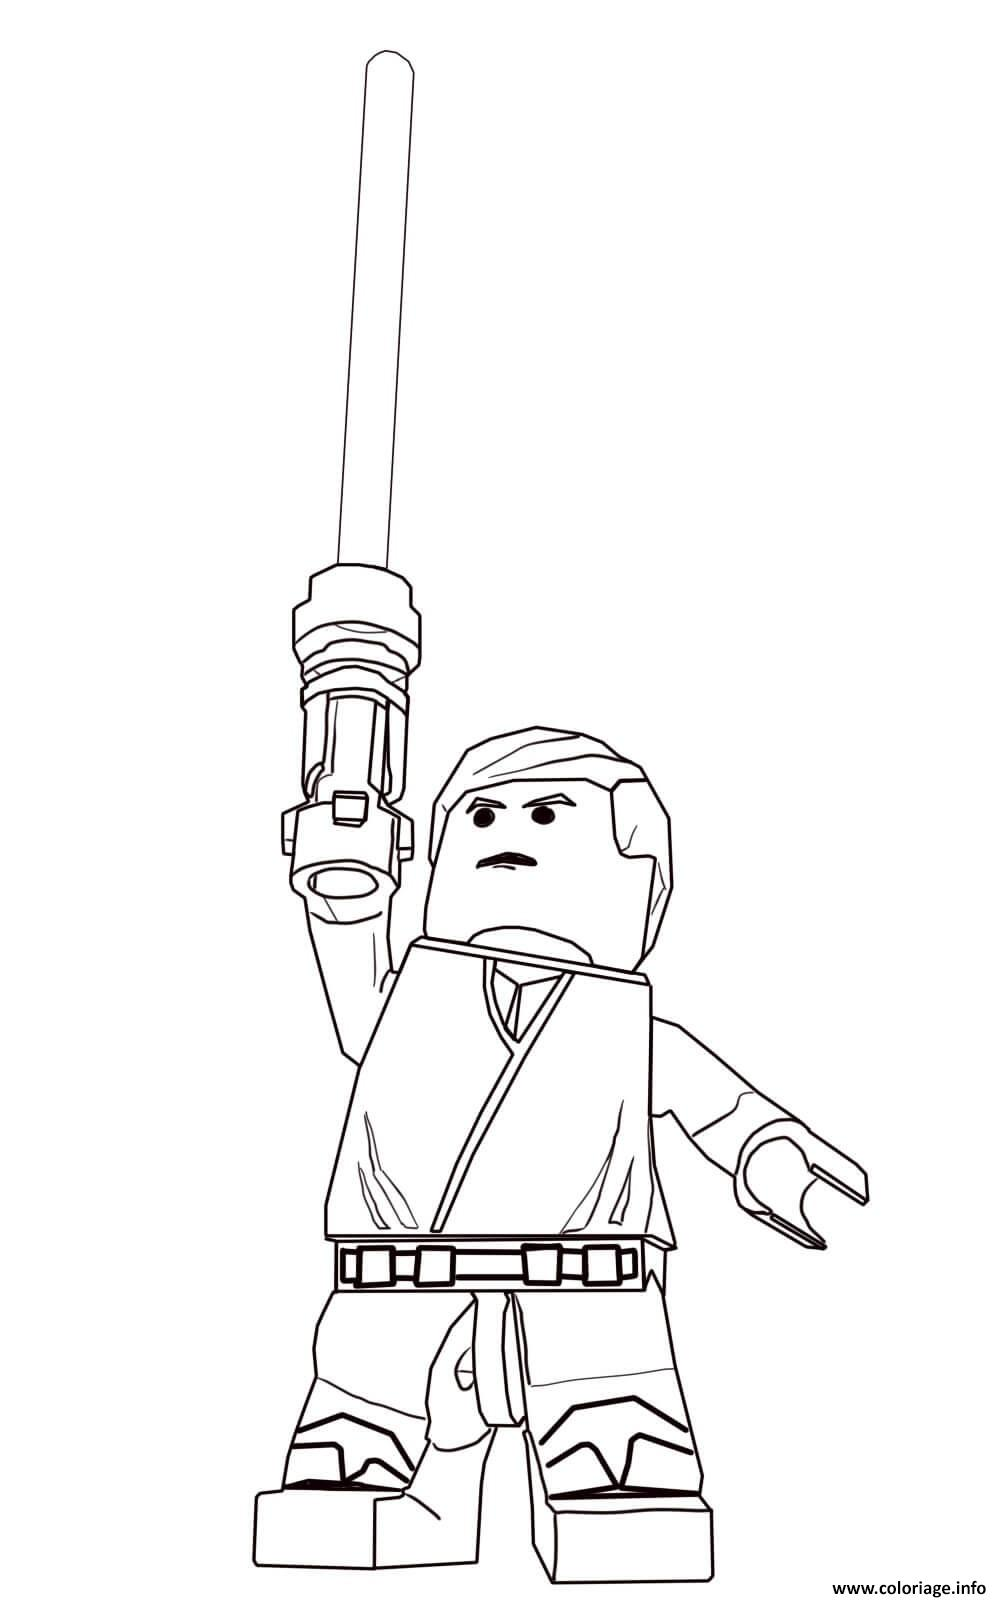 coloriage lego star wars luke skywalker dessin imprimer - Coloriage En Ligne Star Wars